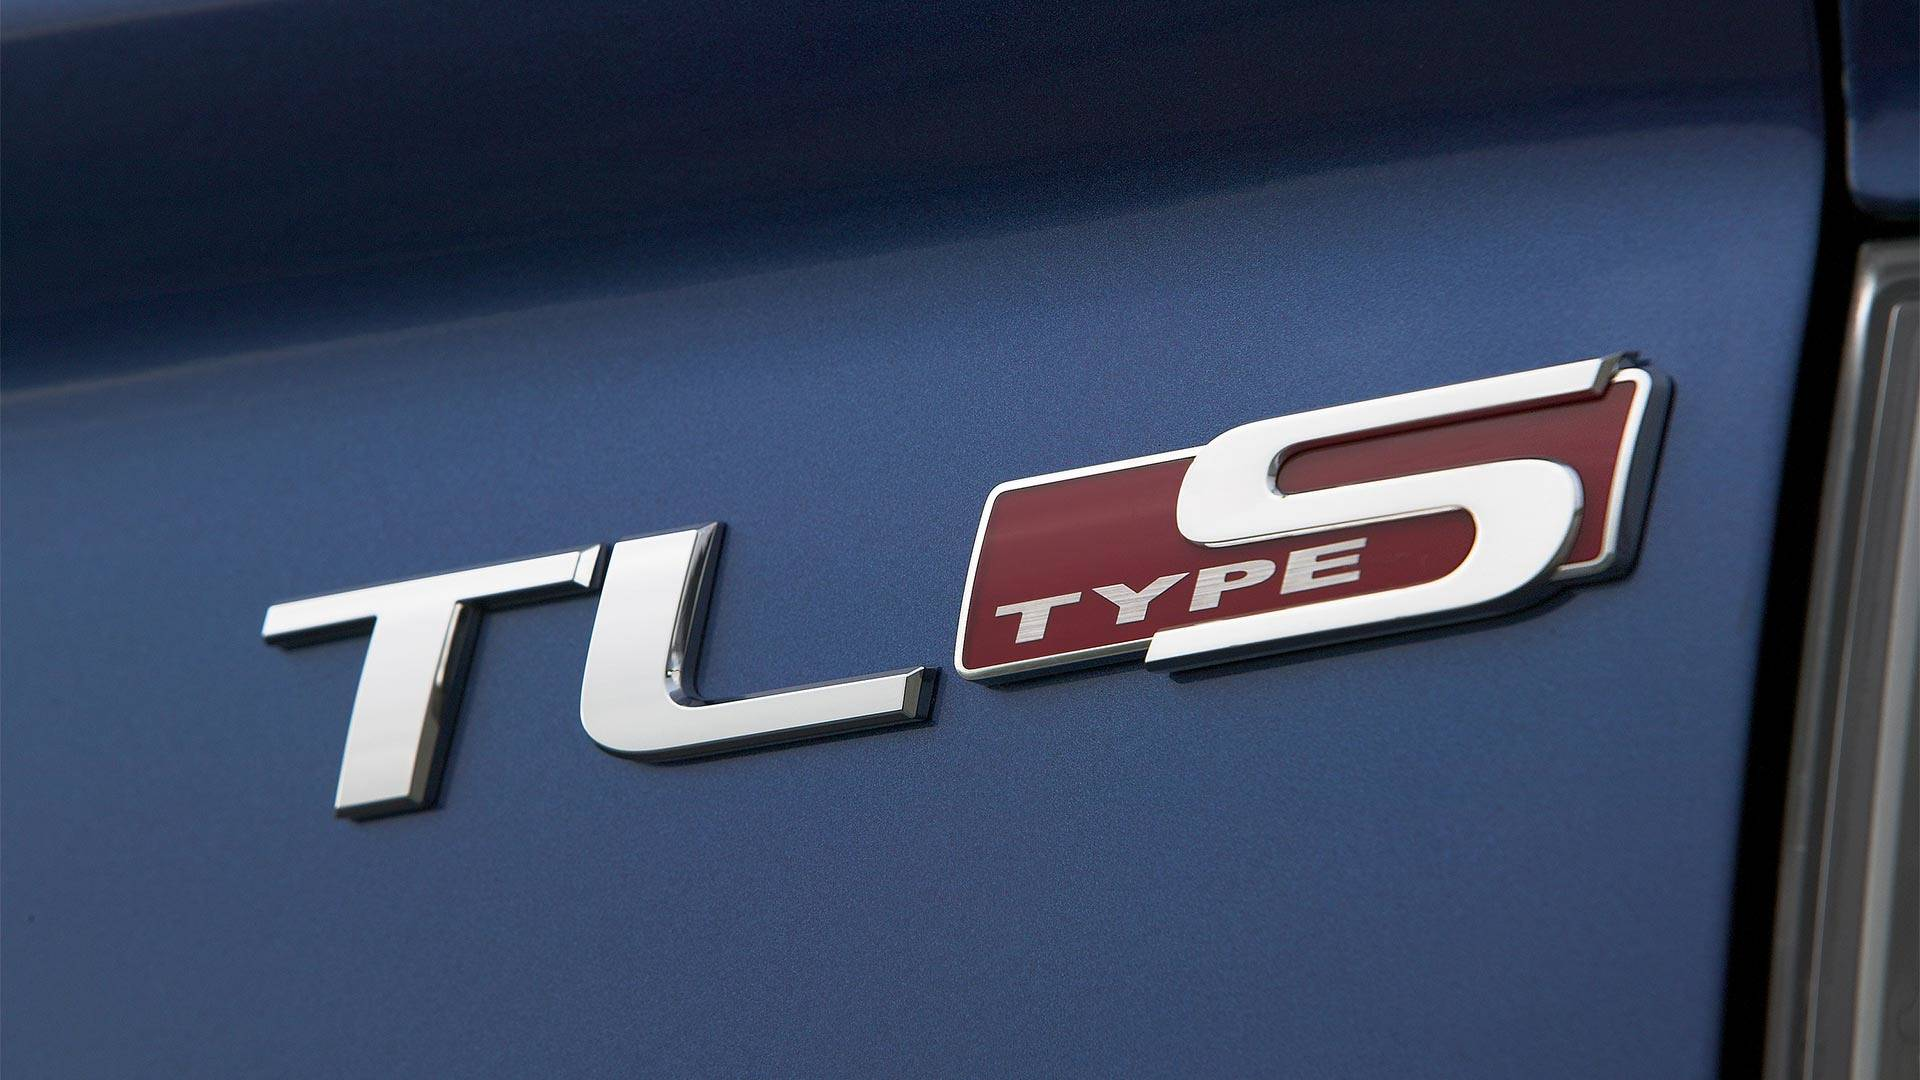 Acura To Relaunch Type S Performance Variants With Turbo V6